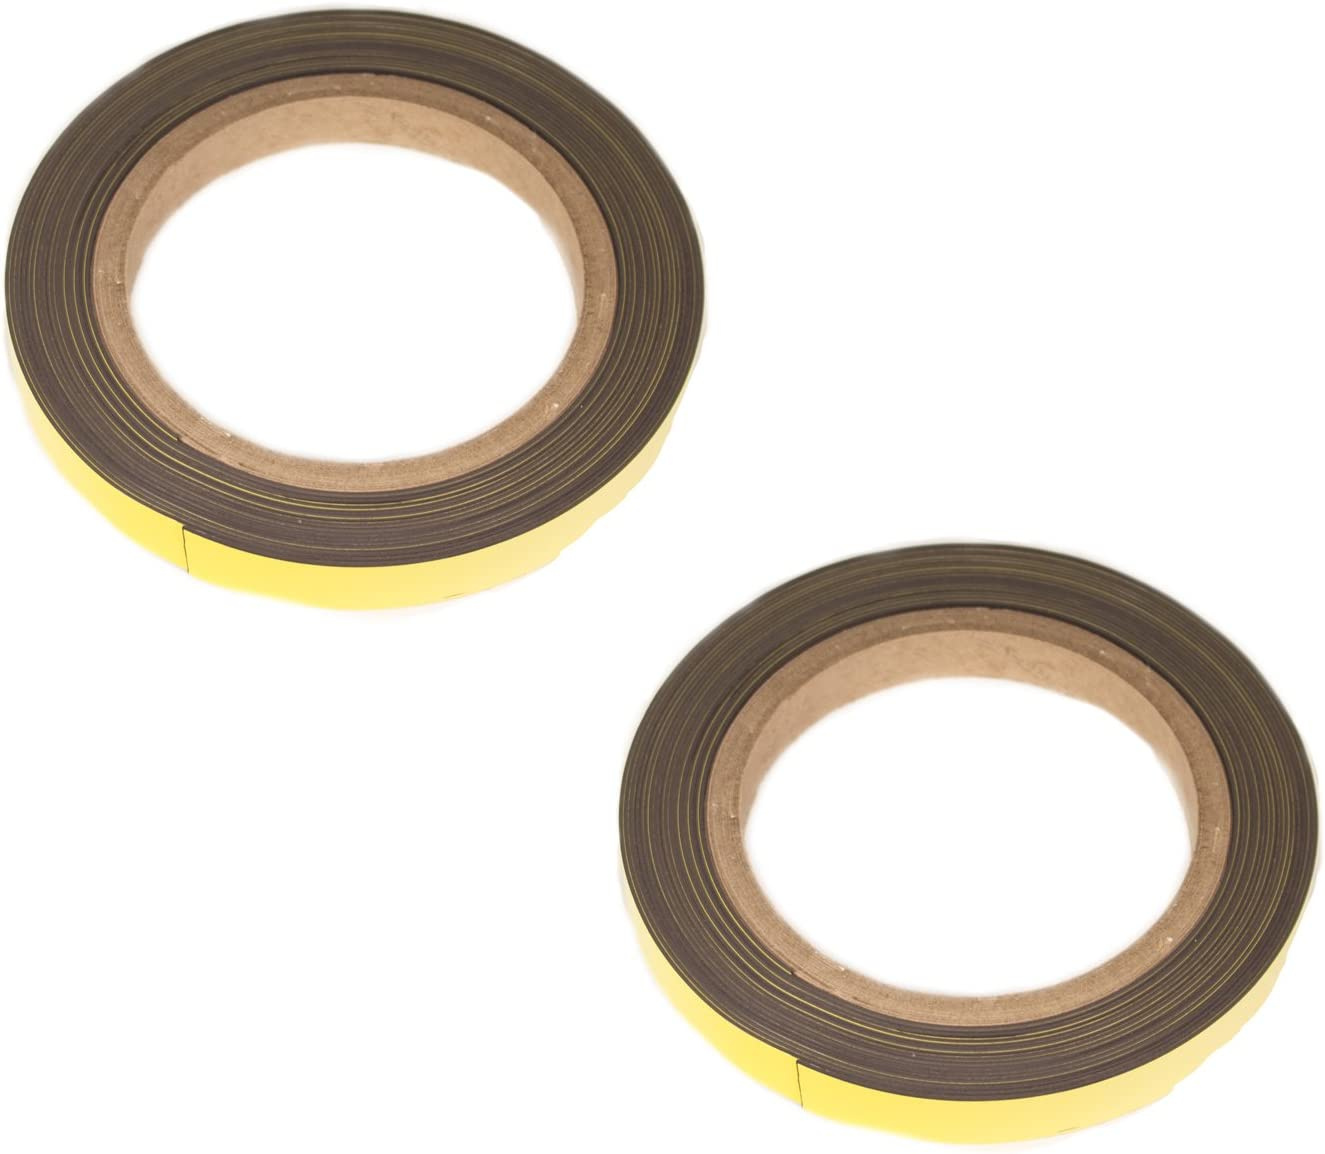 Andrew Mack Mags Magnetic Tape Automotive for shopping Free shipping / New Pinstriping -